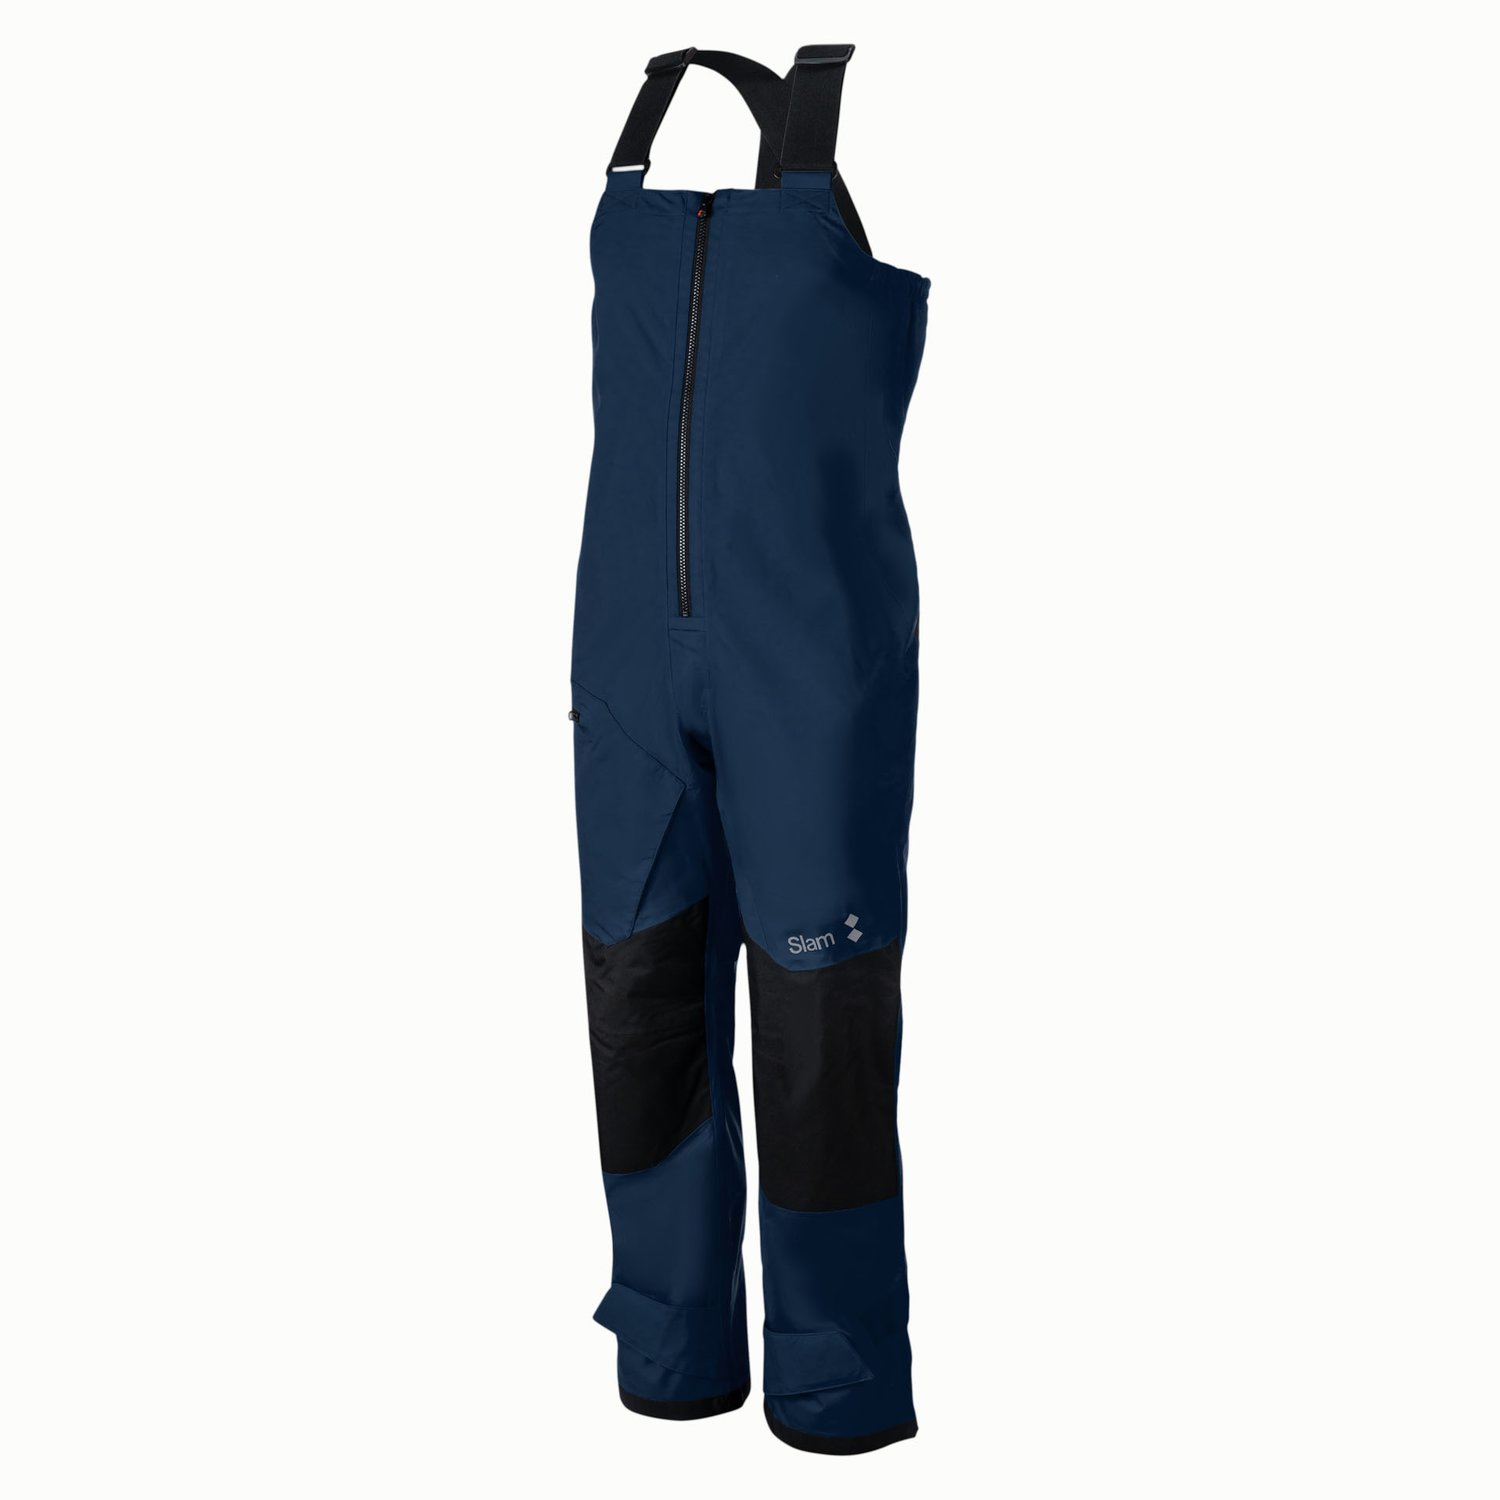 WIN-D 1 SAILING BIBS - Navy